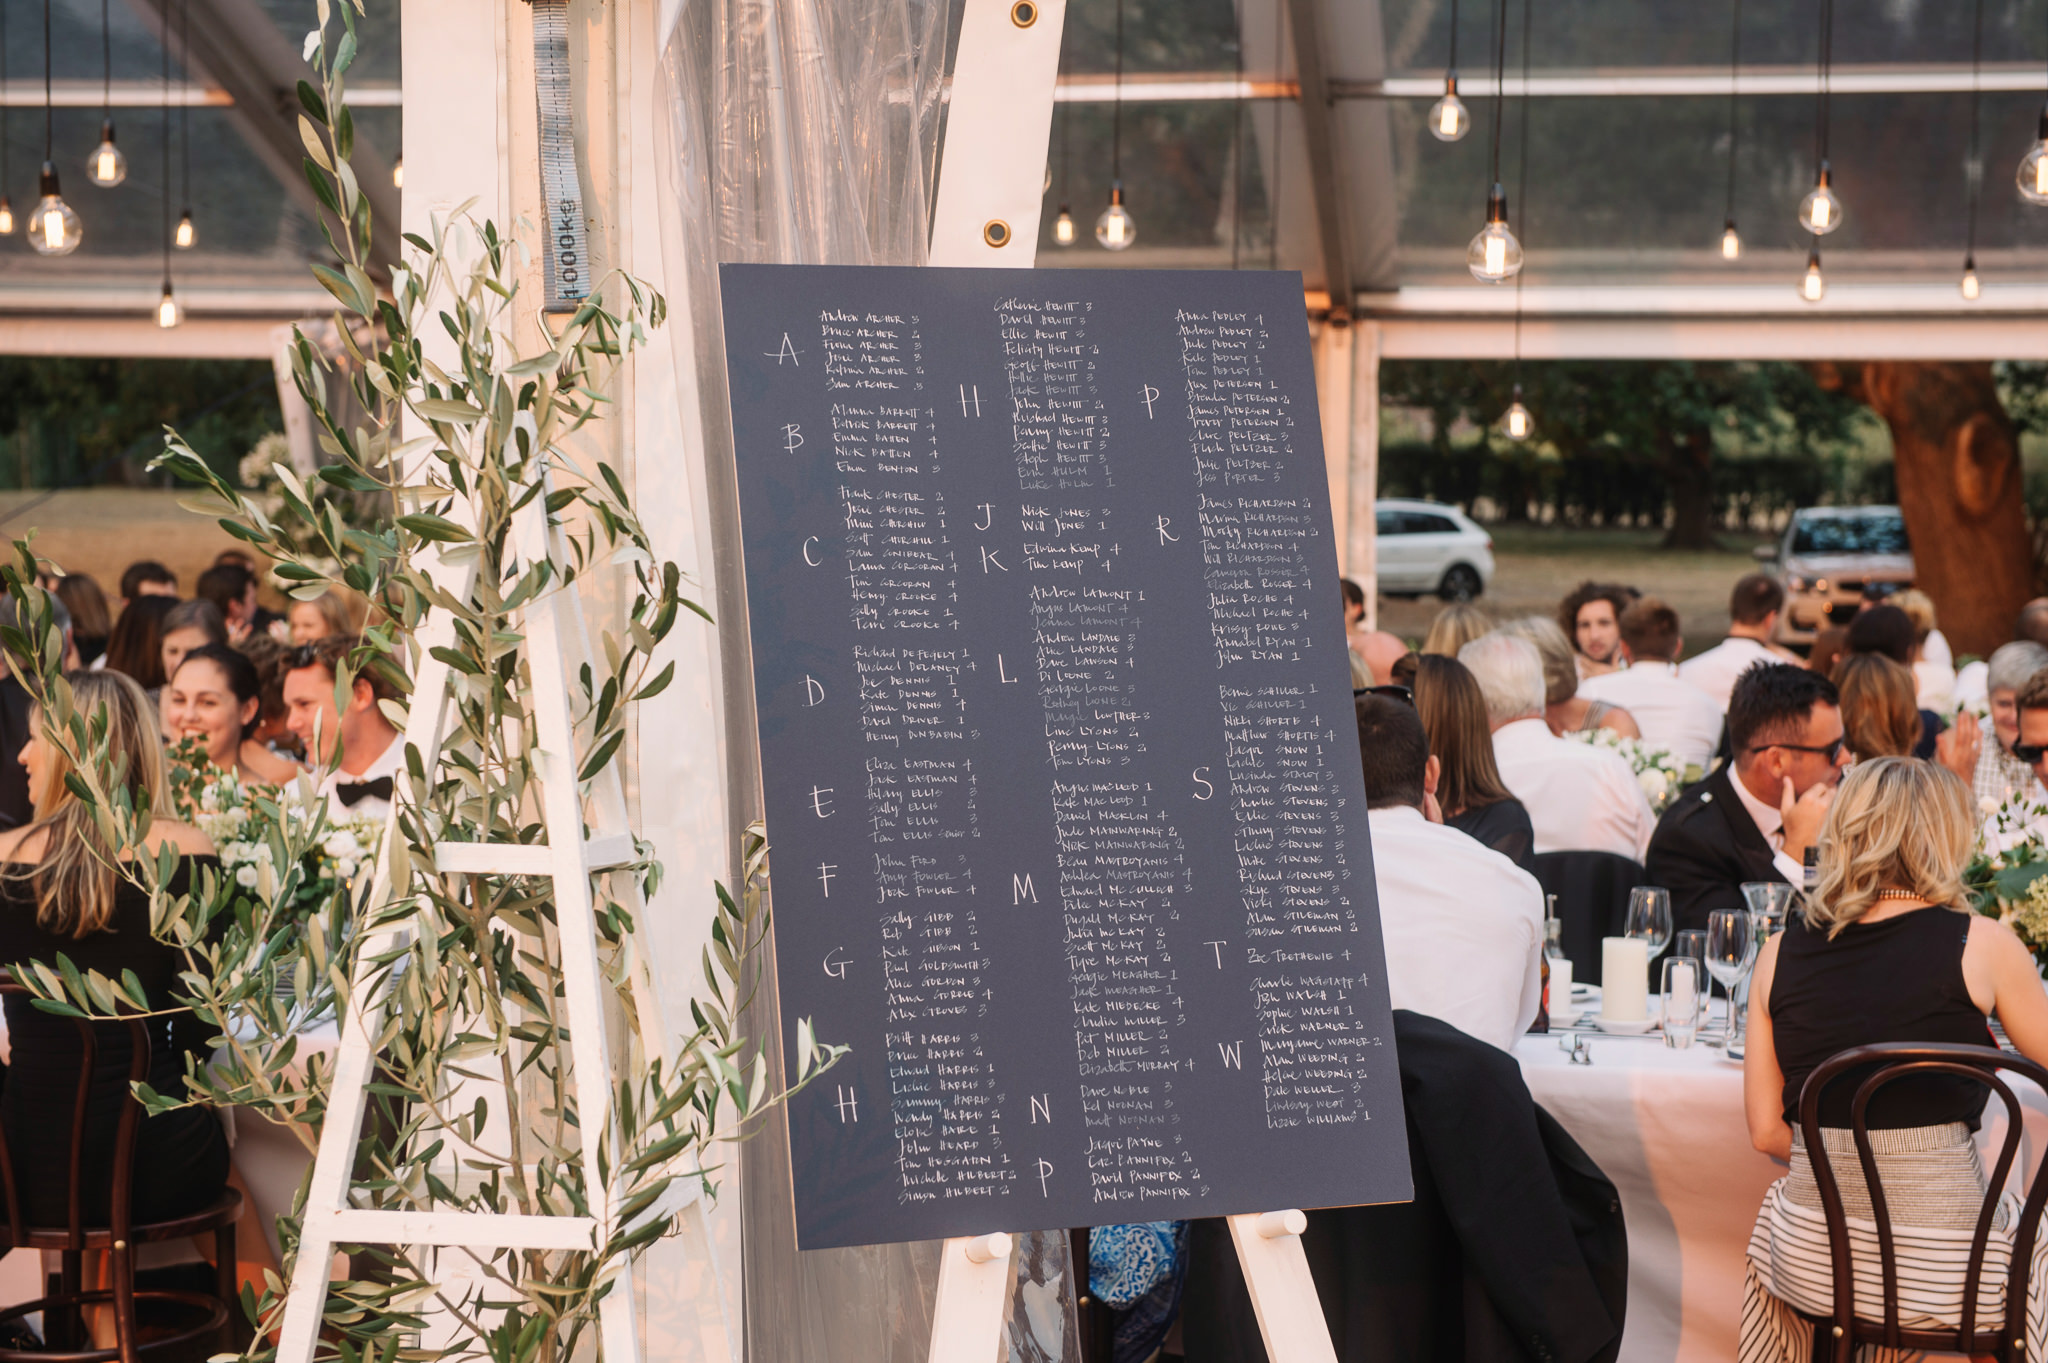 Hand written seating plan for guest placement